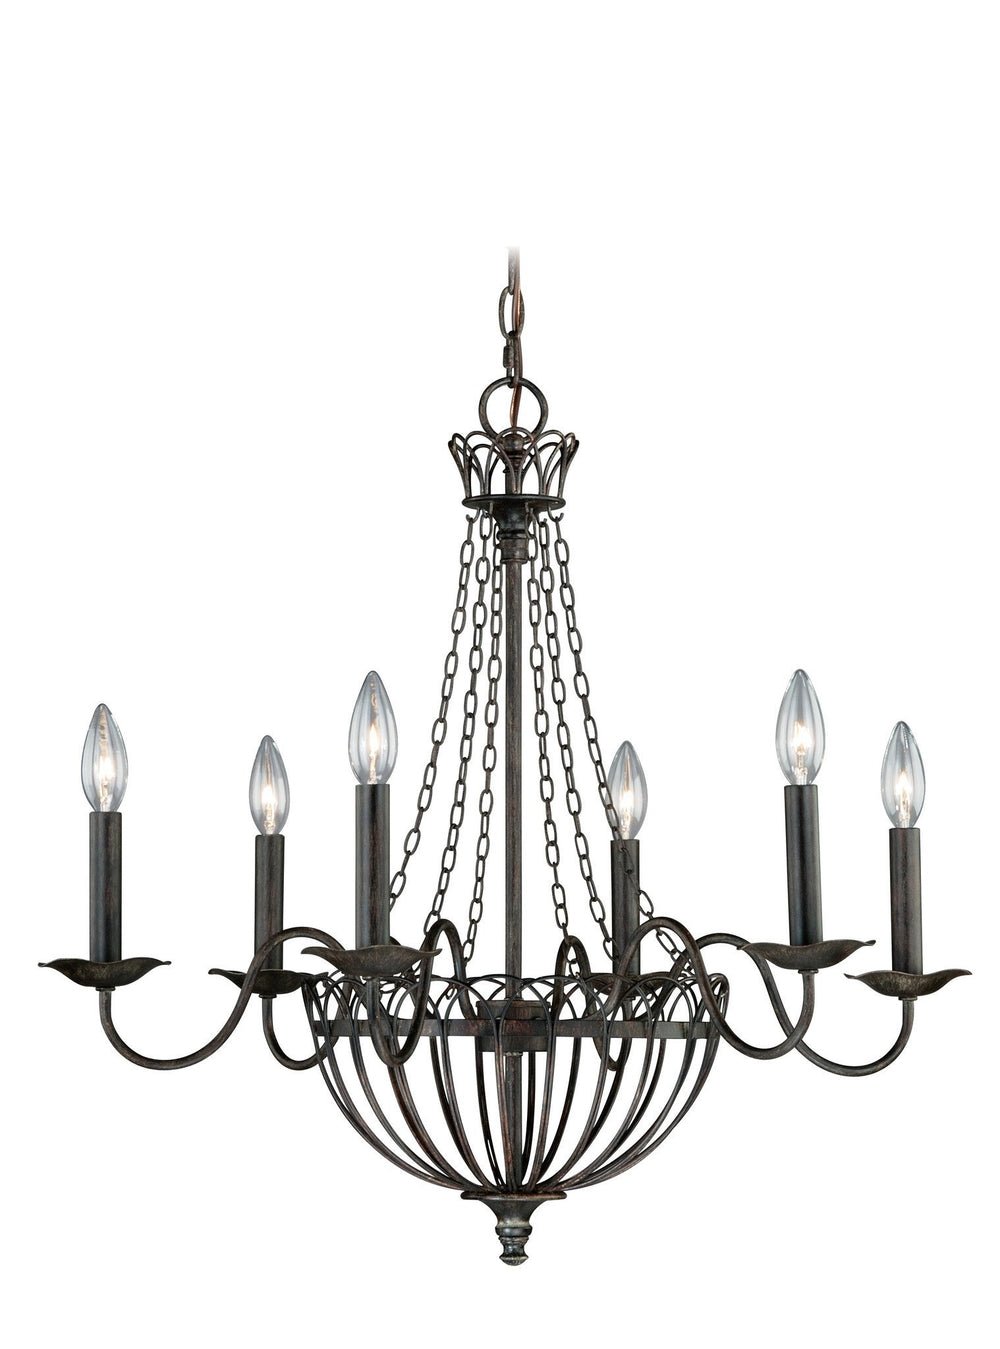 Vaxcel Novara 6 Light Chandelier Model: H0058